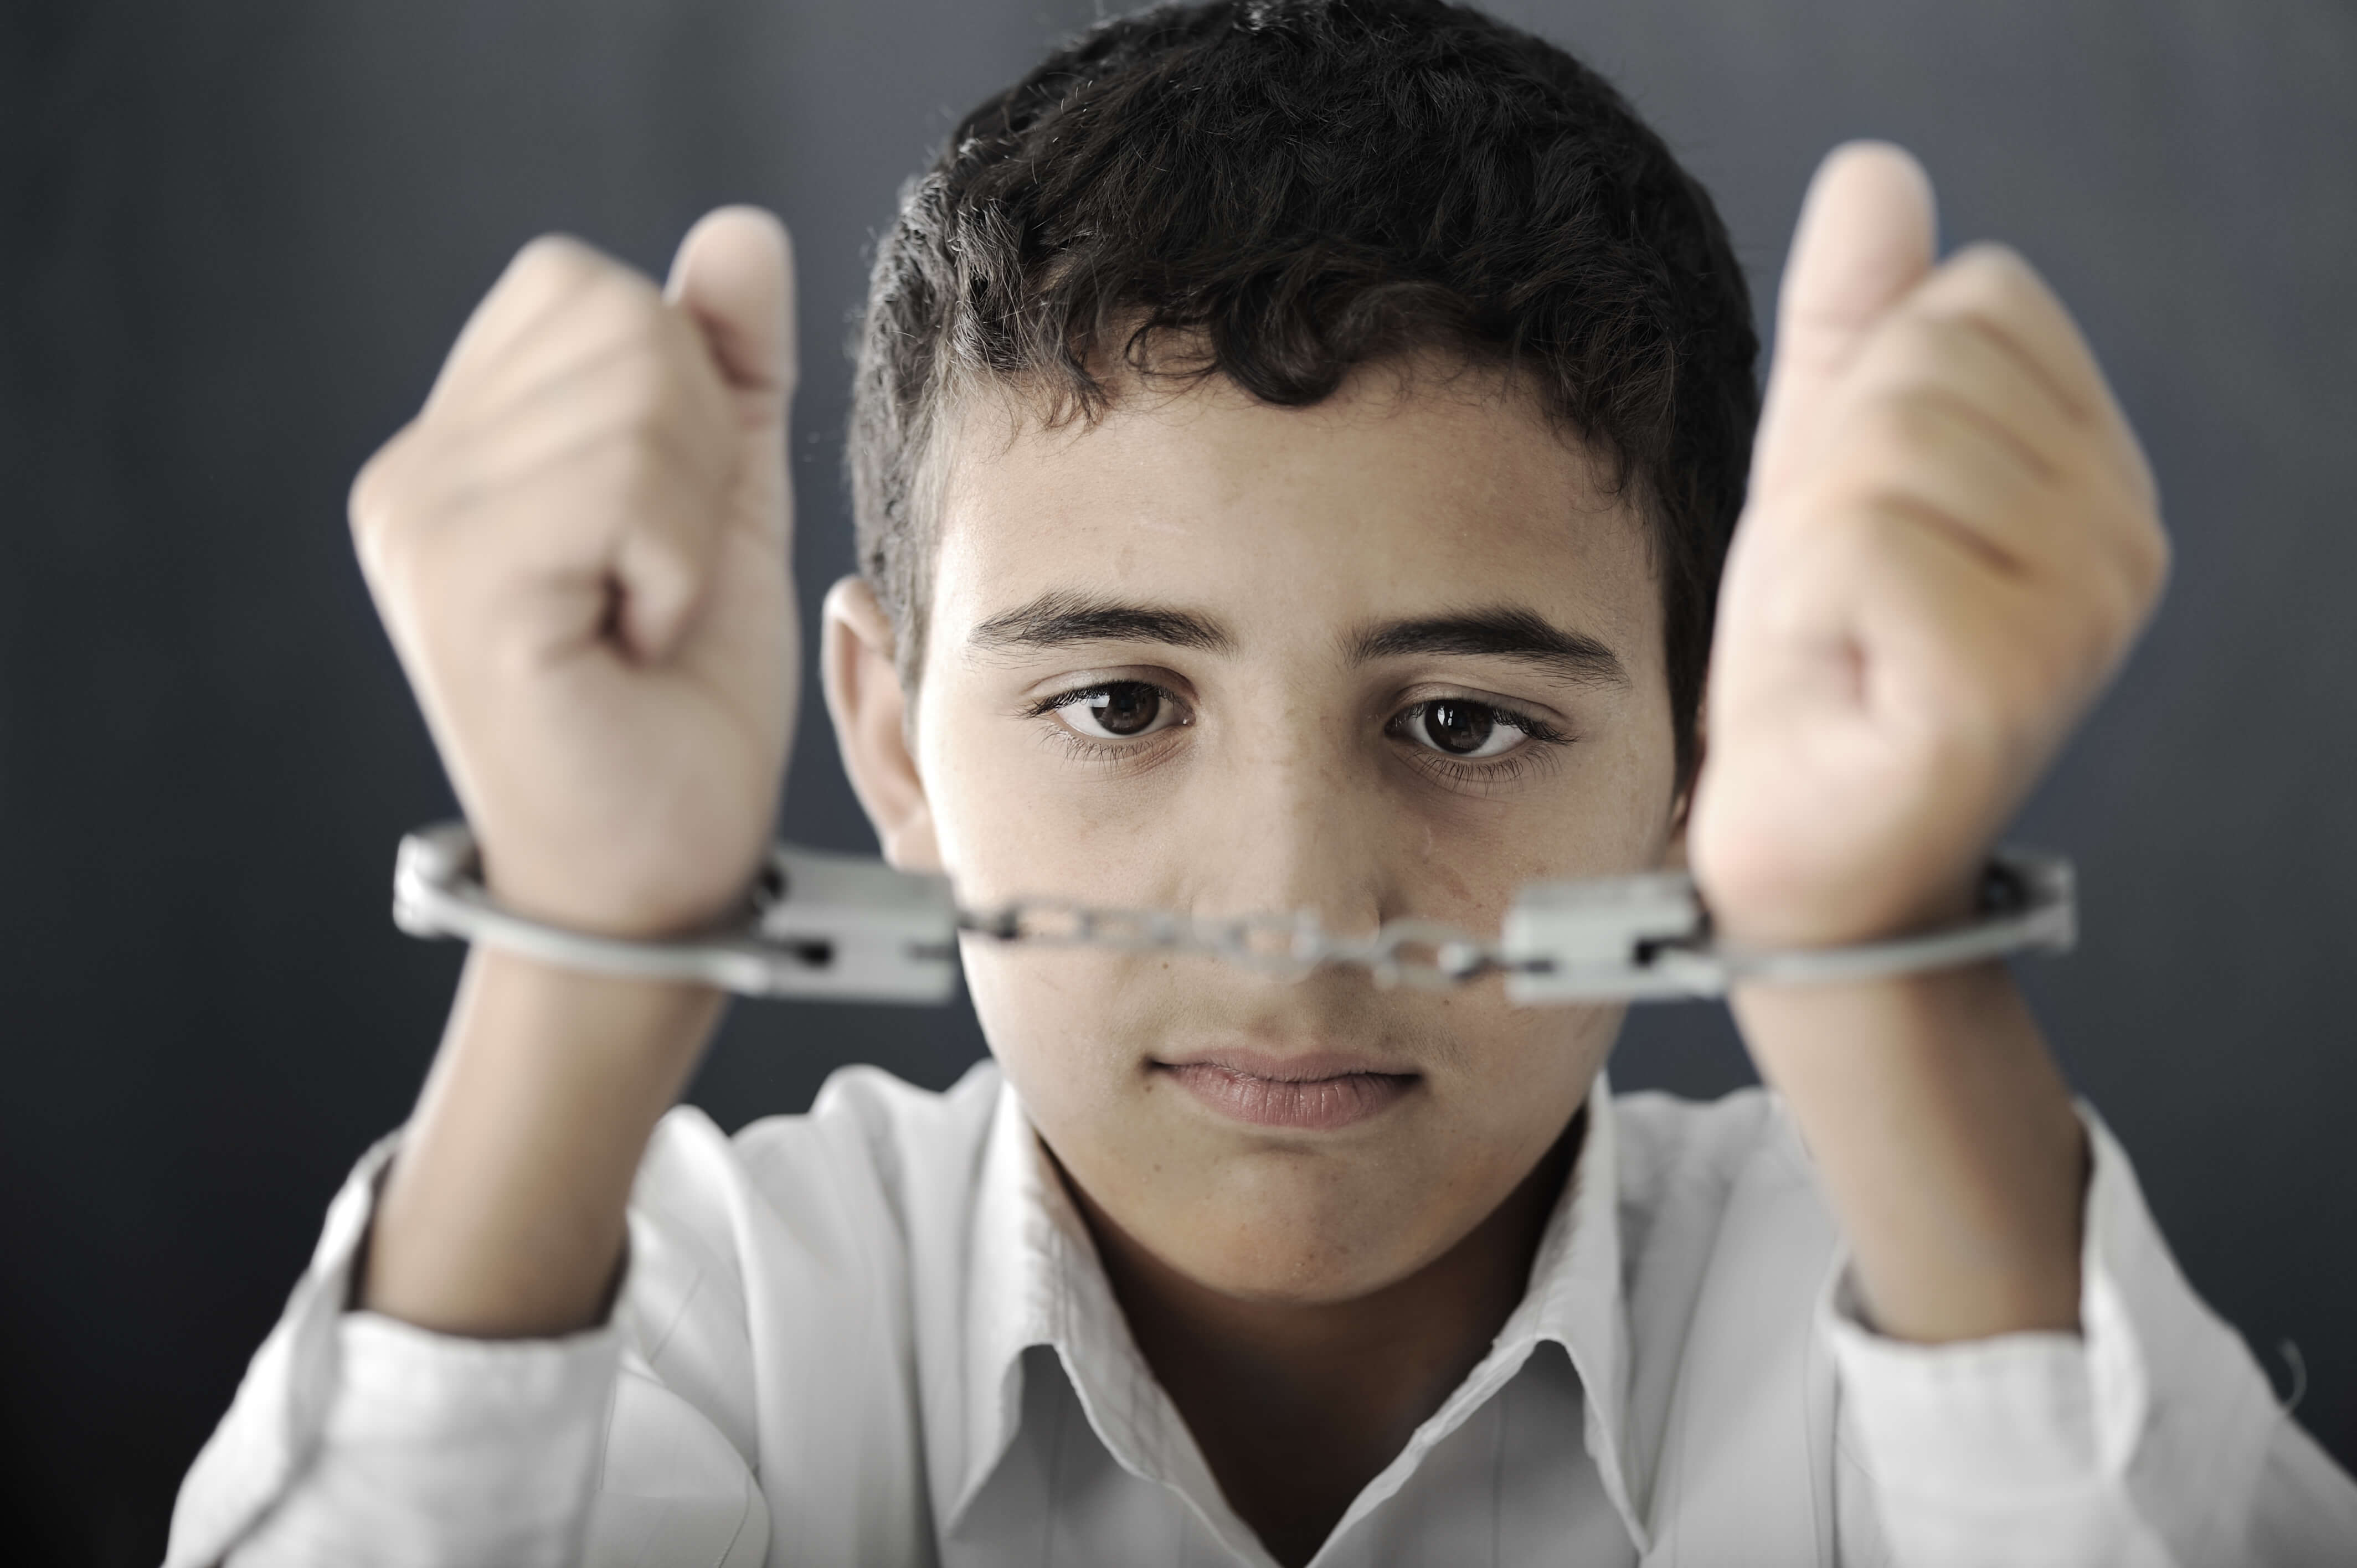 Child in handcuffs - juvenile criminal charges